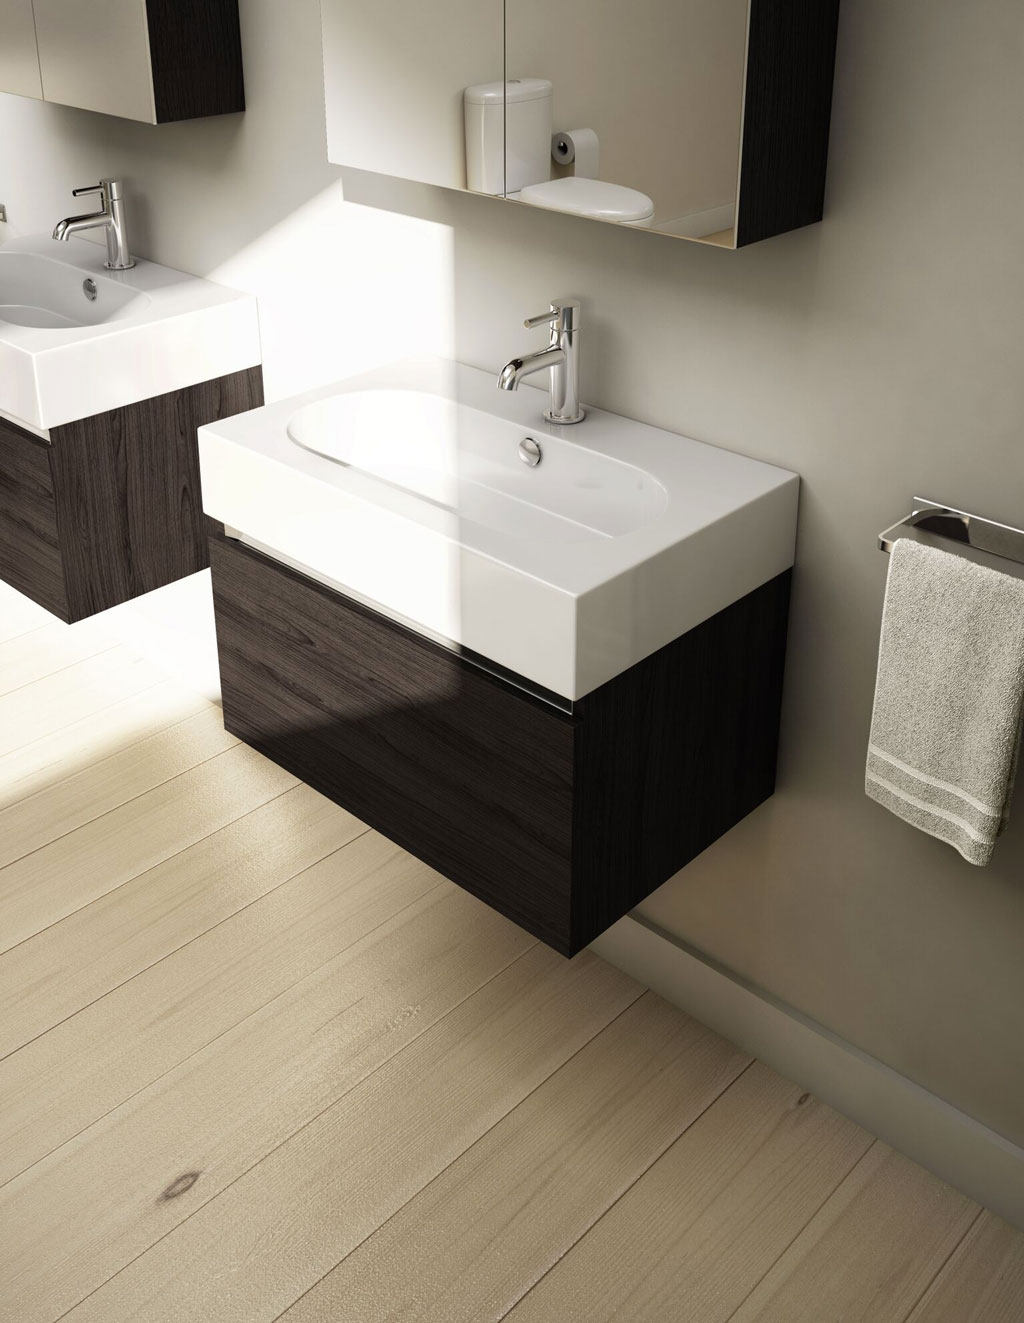 60cm-single-drawer-wall-mounted-unit-in-wenge-